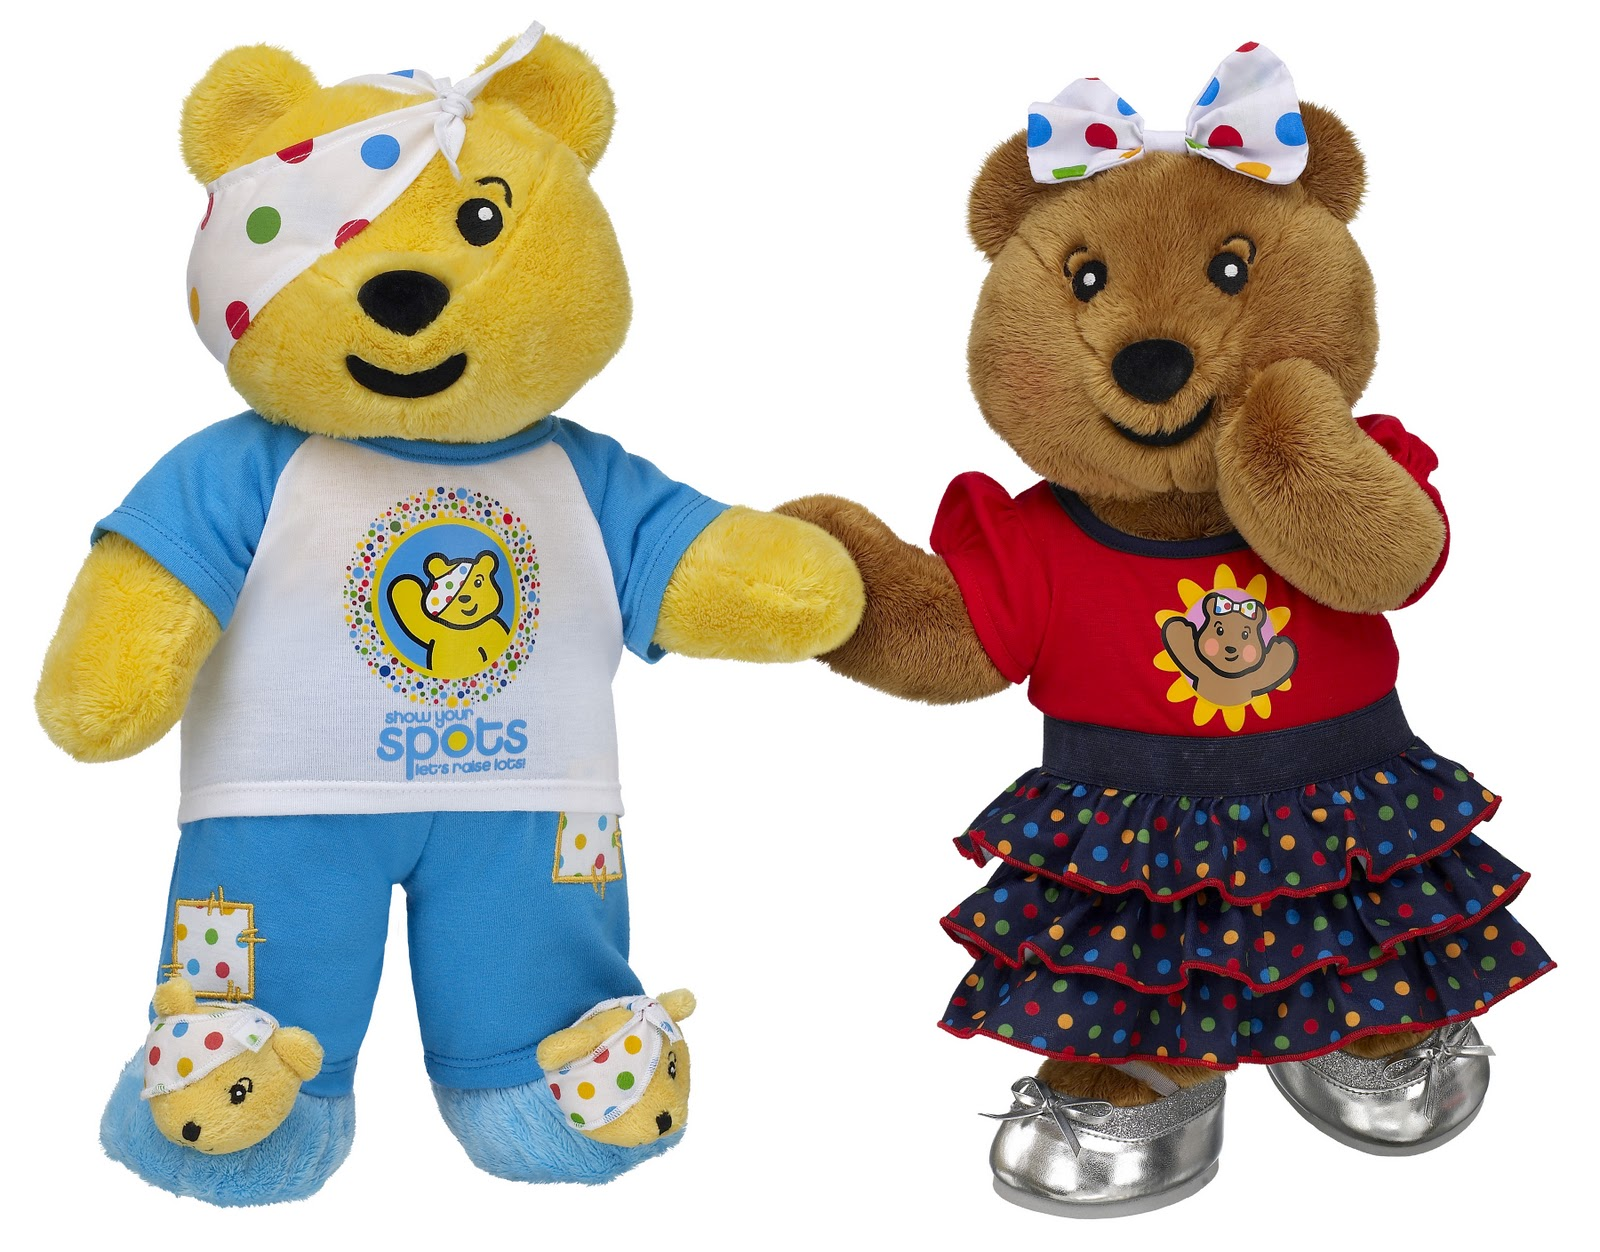 If you're not already in line for today's special Build-A-Bear store sale, it's probably too late. The chain had to end the promotion early after hours-long lines formed in malls across the country.